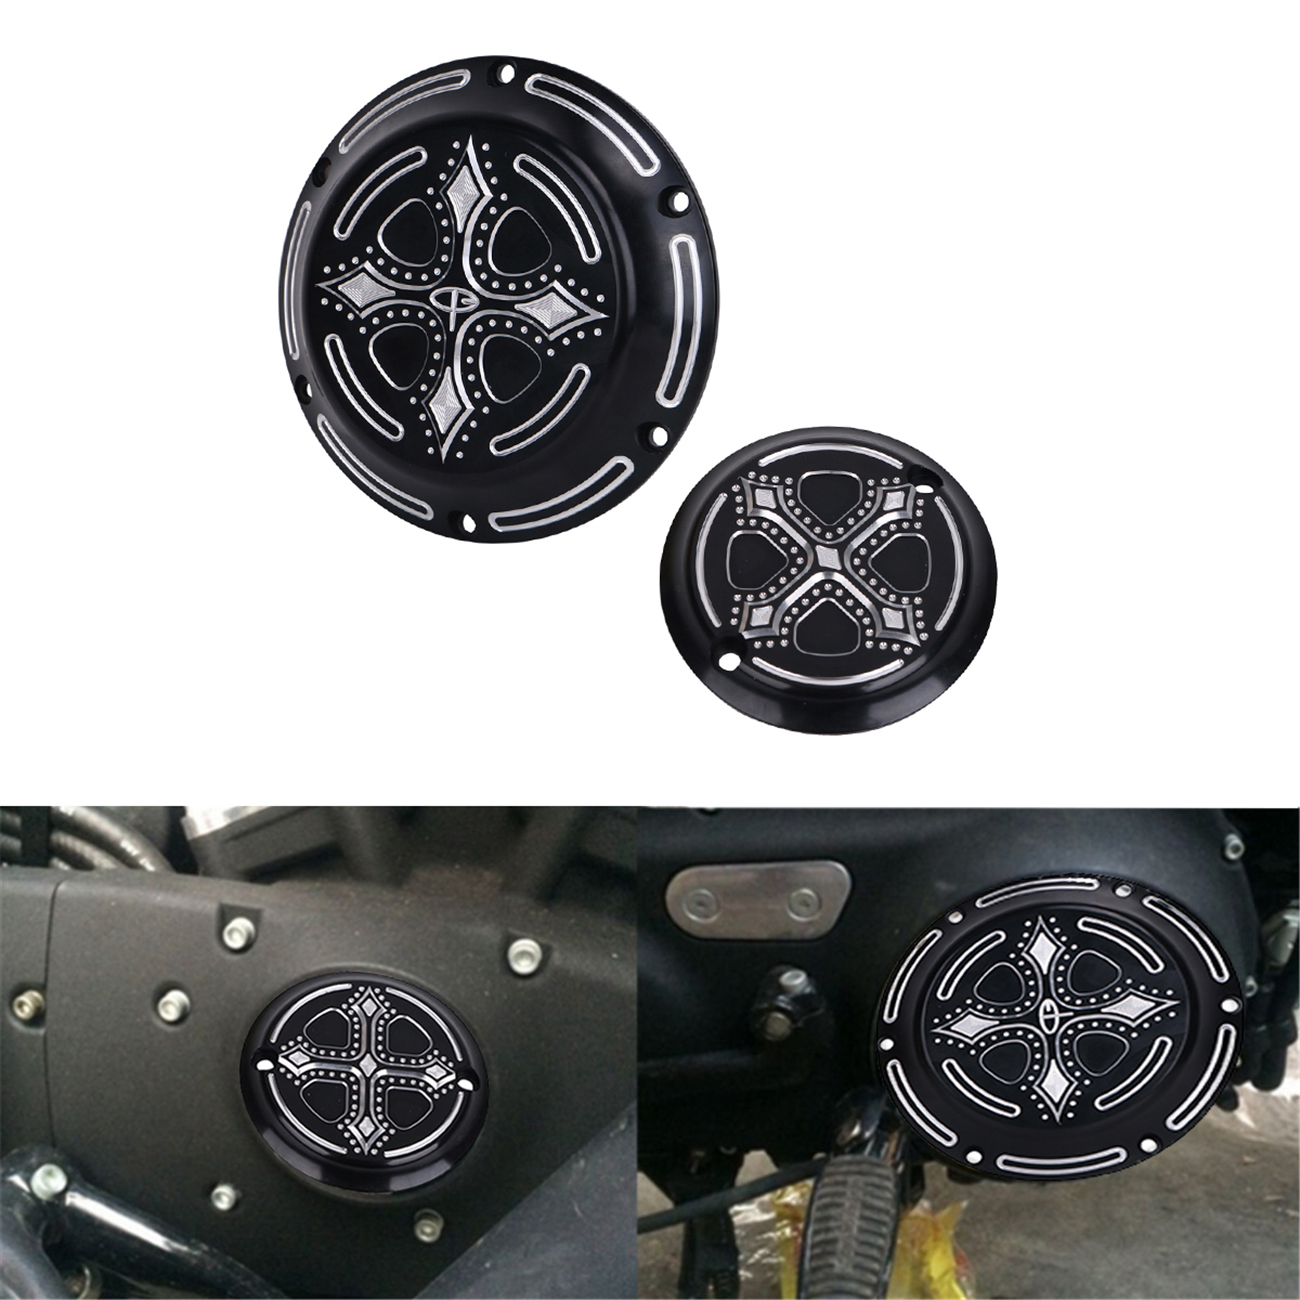 Motorbike CNC Deep Cut Crow Cross Heart Derby Timing Timer Cover Engine For Harley XL XR Sportster 883 1200 XL883 XL1200 #MBJ327 mtsooning timing cover and 1 derby cover for harley davidson xlh 883 sportster 1986 2004 xl 883 sportster custom 1998 2008 883l